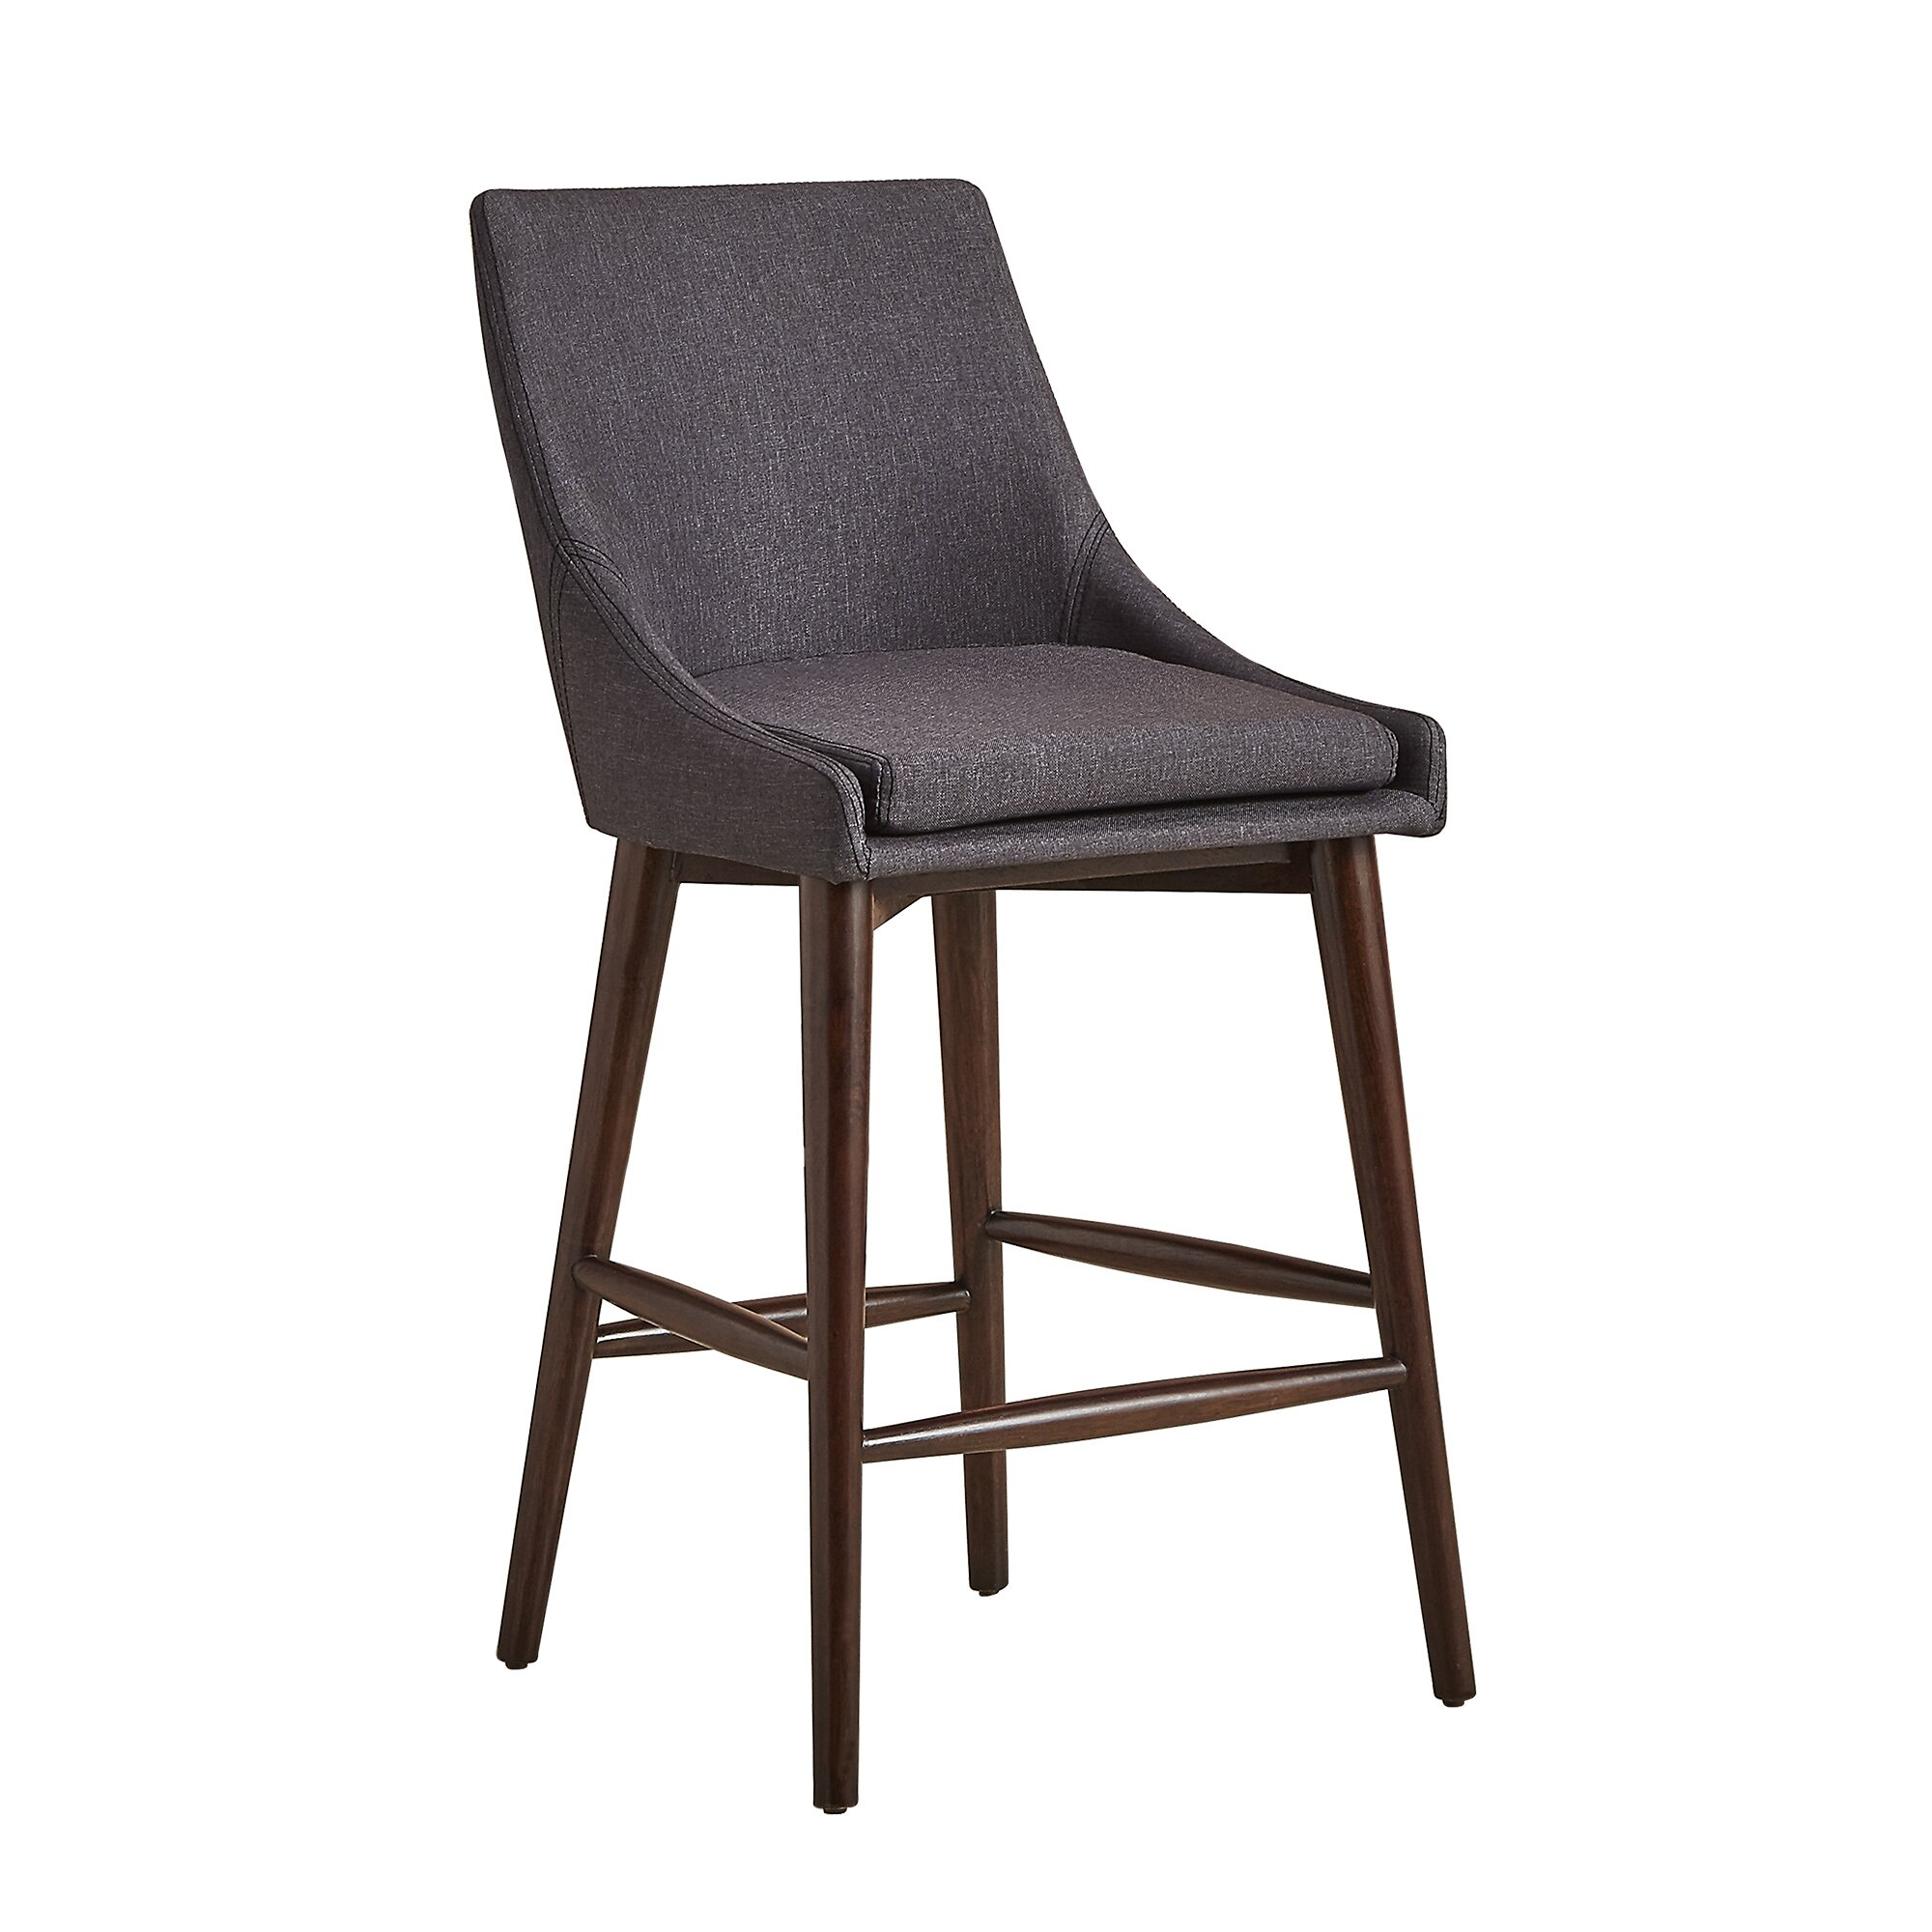 Counter Height Youth Chair : Mercury Row Blaisdell Counter Height Arm Chair & Reviews Wayfair